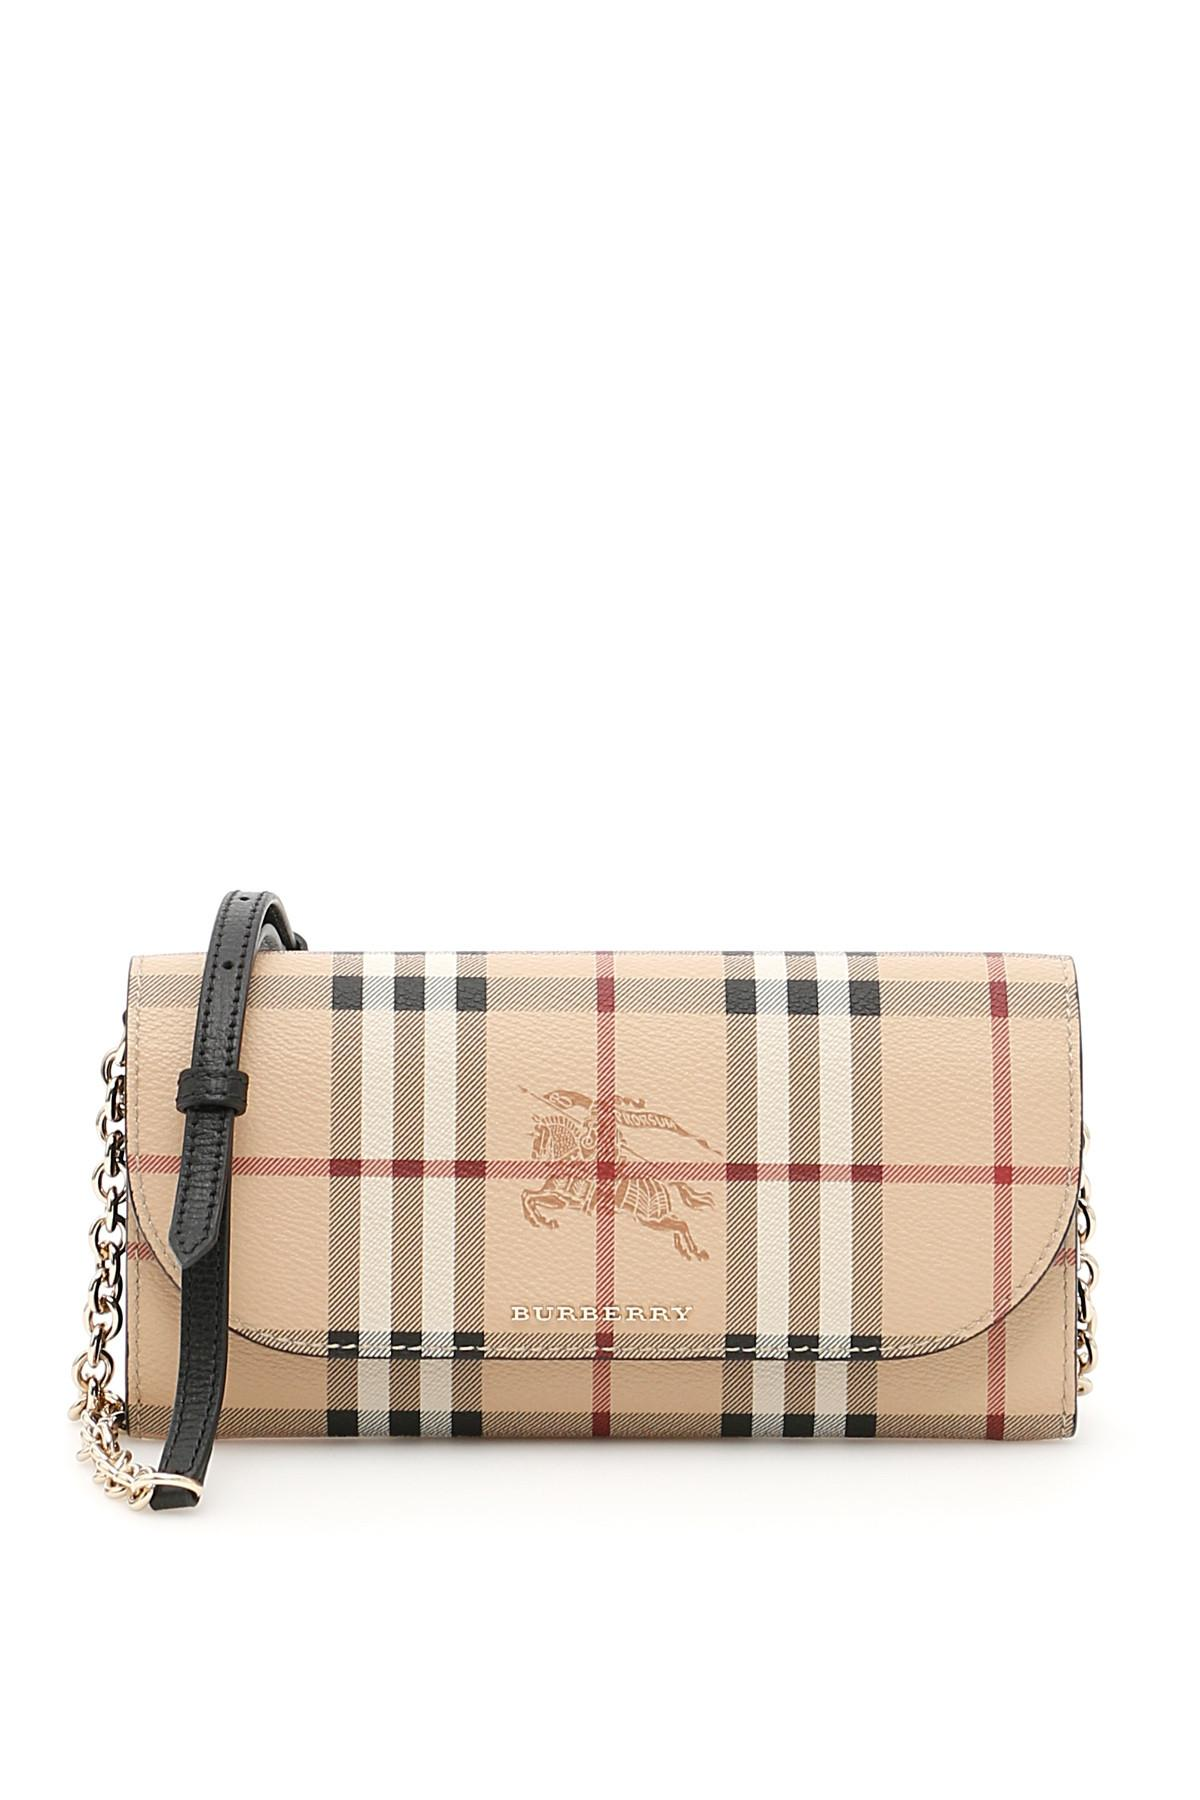 Clearance Professional Tartan Cotton and Leather Wallet with Chain - Green Burberry Buy Cheap Pre Order Genuine Cheap Price Clearance Very Cheap ohXLUA